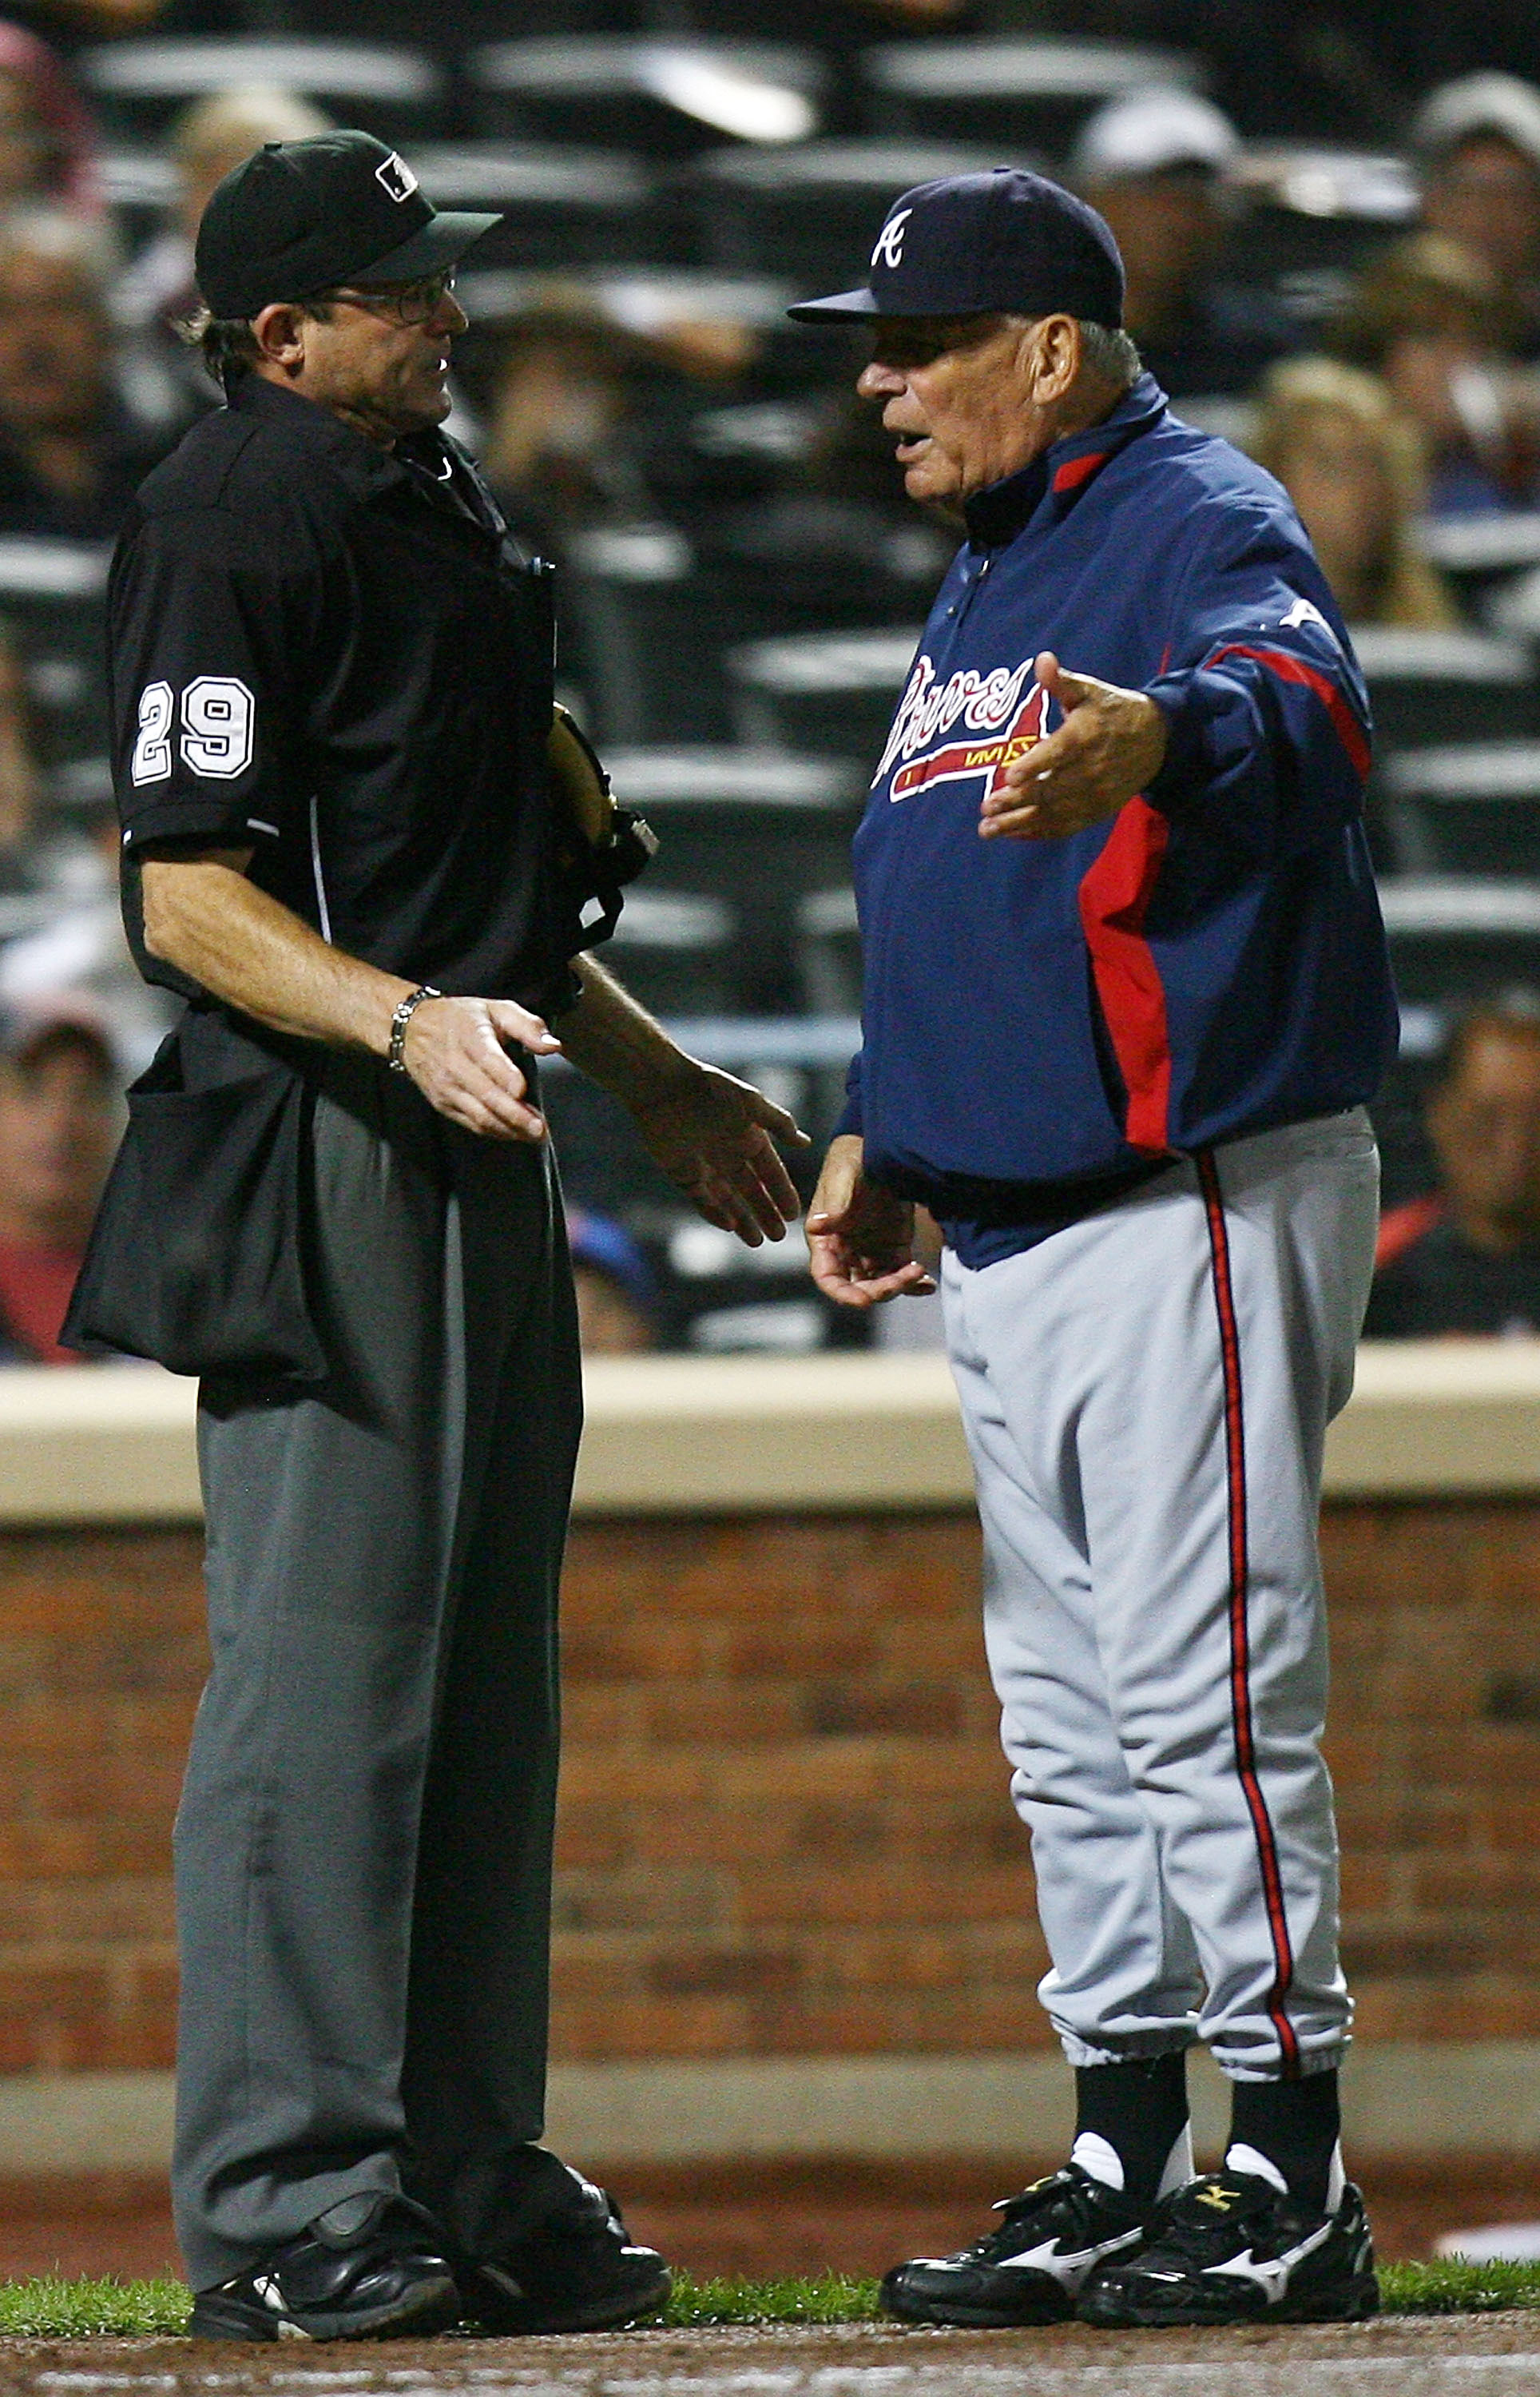 NEW YORK - SEPTEMBER 17:  Home plate umpire Bill Hohn #29 argues with Bobby Cox of the Atlanta Braves during a game against the New York Mets on September 17, 2010 at Citi Field in the Flushing neighborhood of the Queens borough of New York City.  (Photo